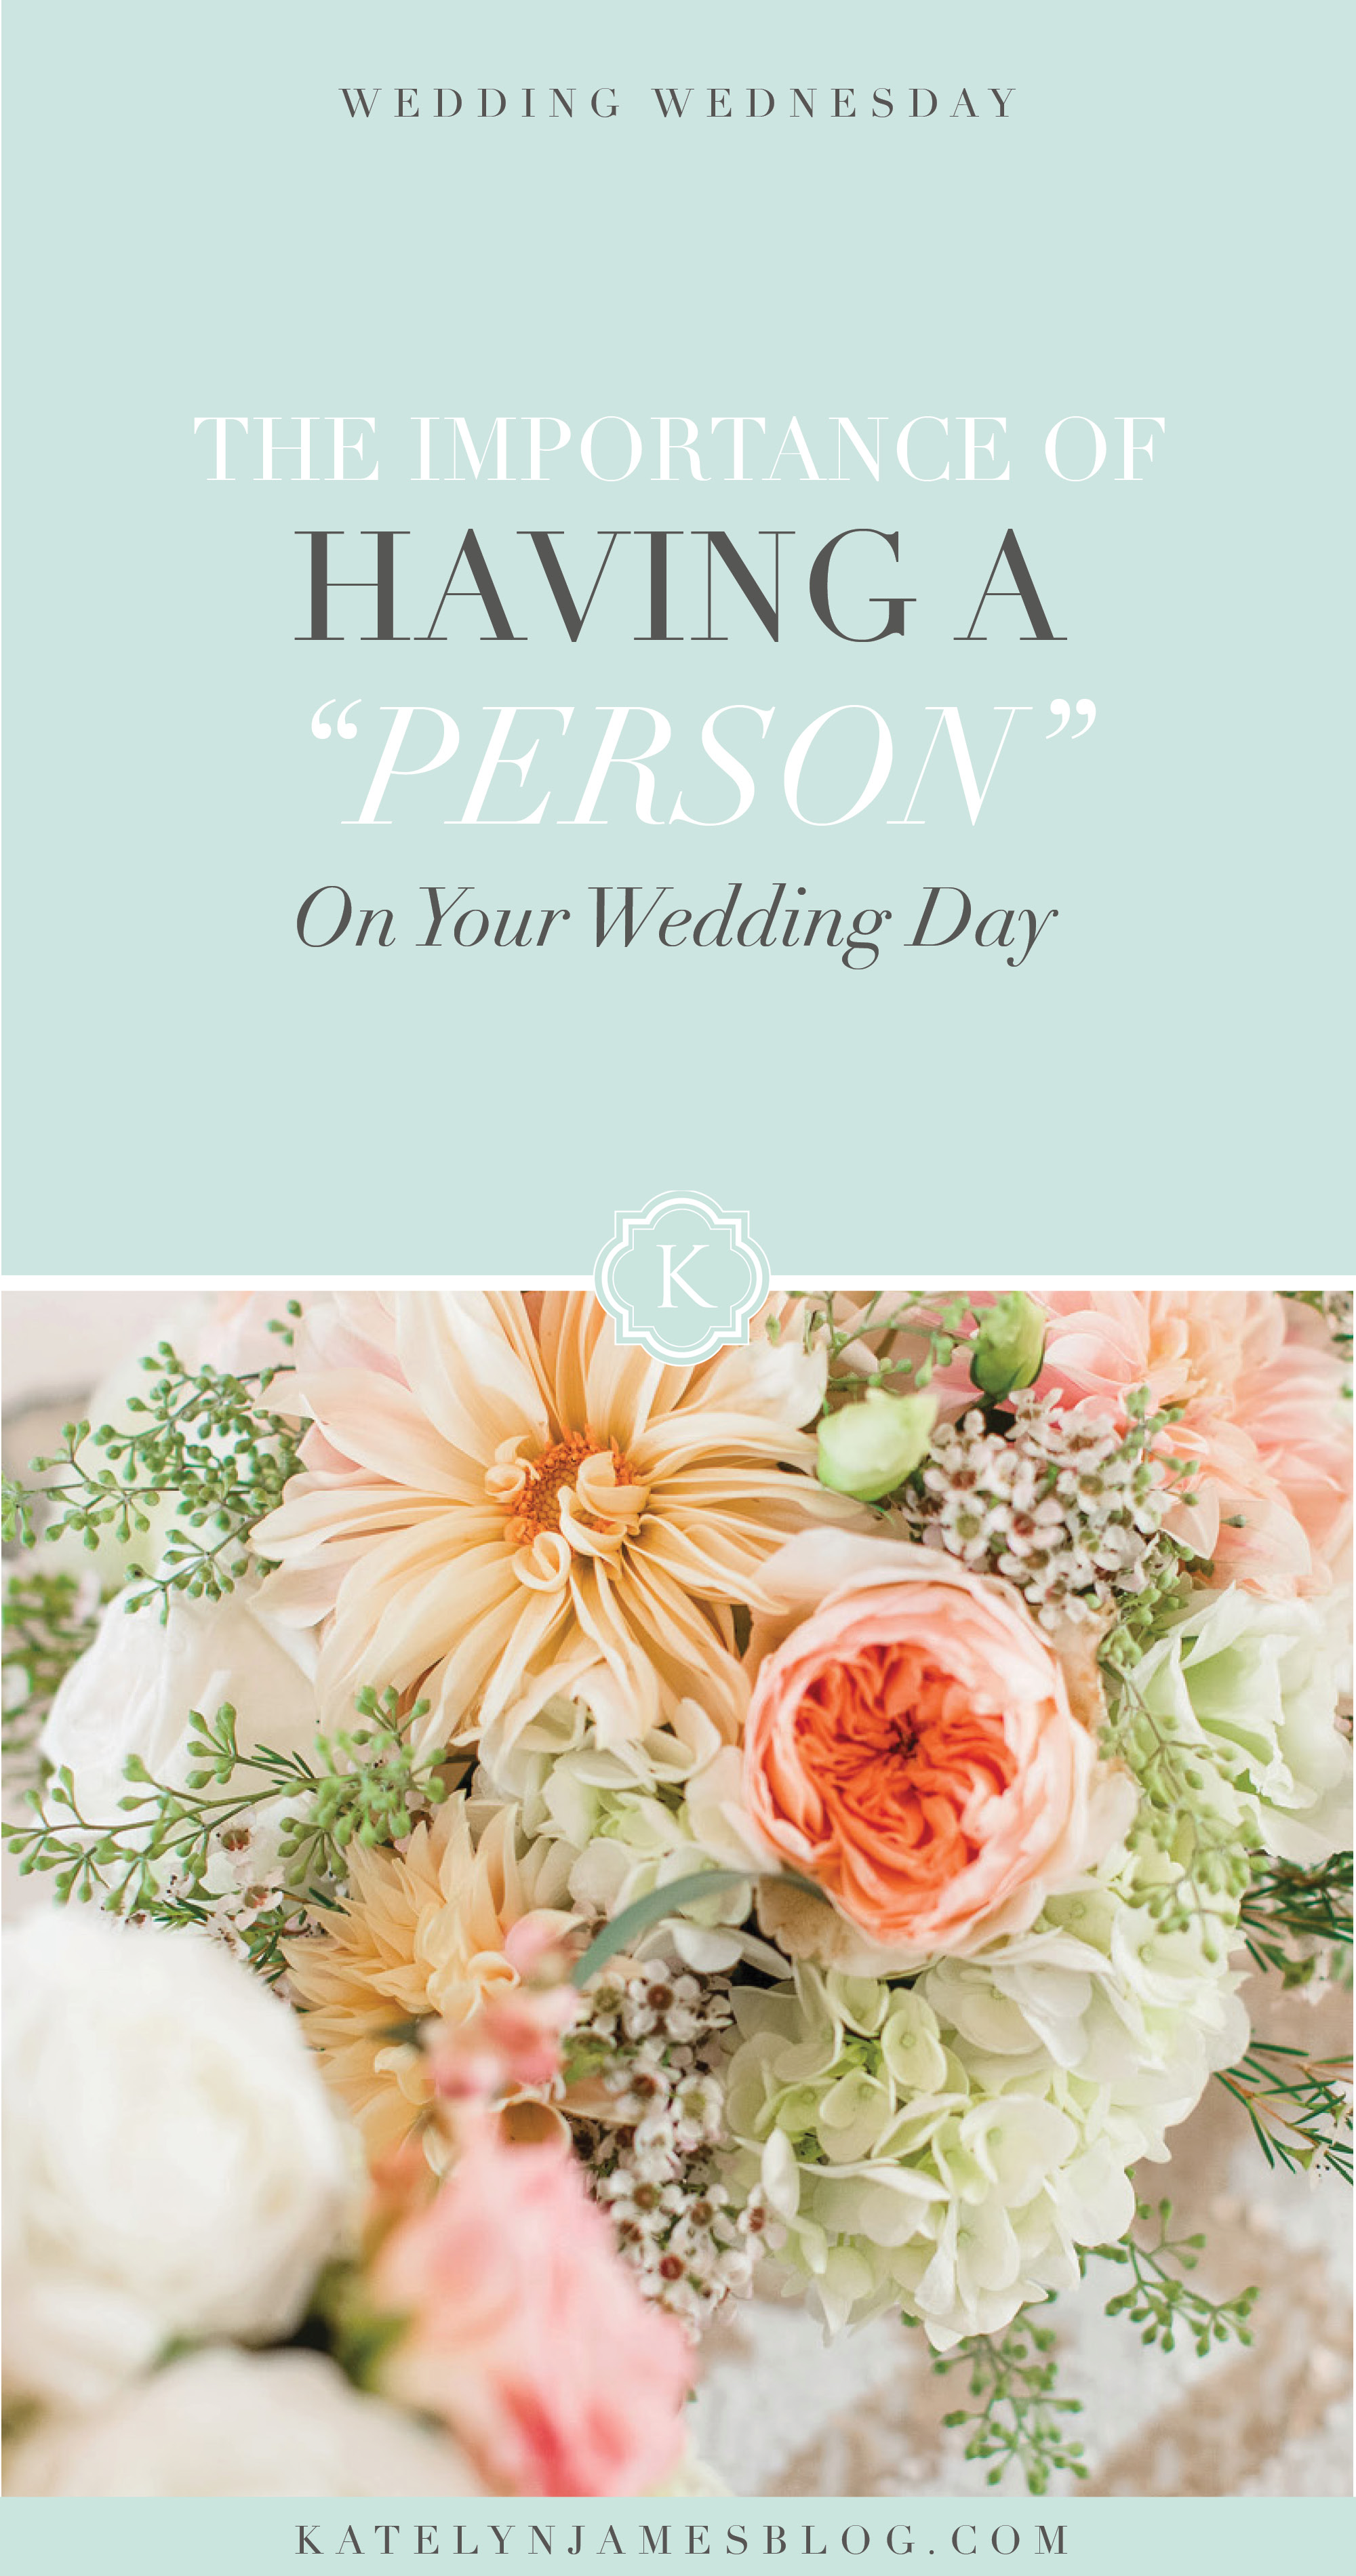 "The Importance of Having a ""Person"" on Your Wedding Day by Katelyn James Photography"